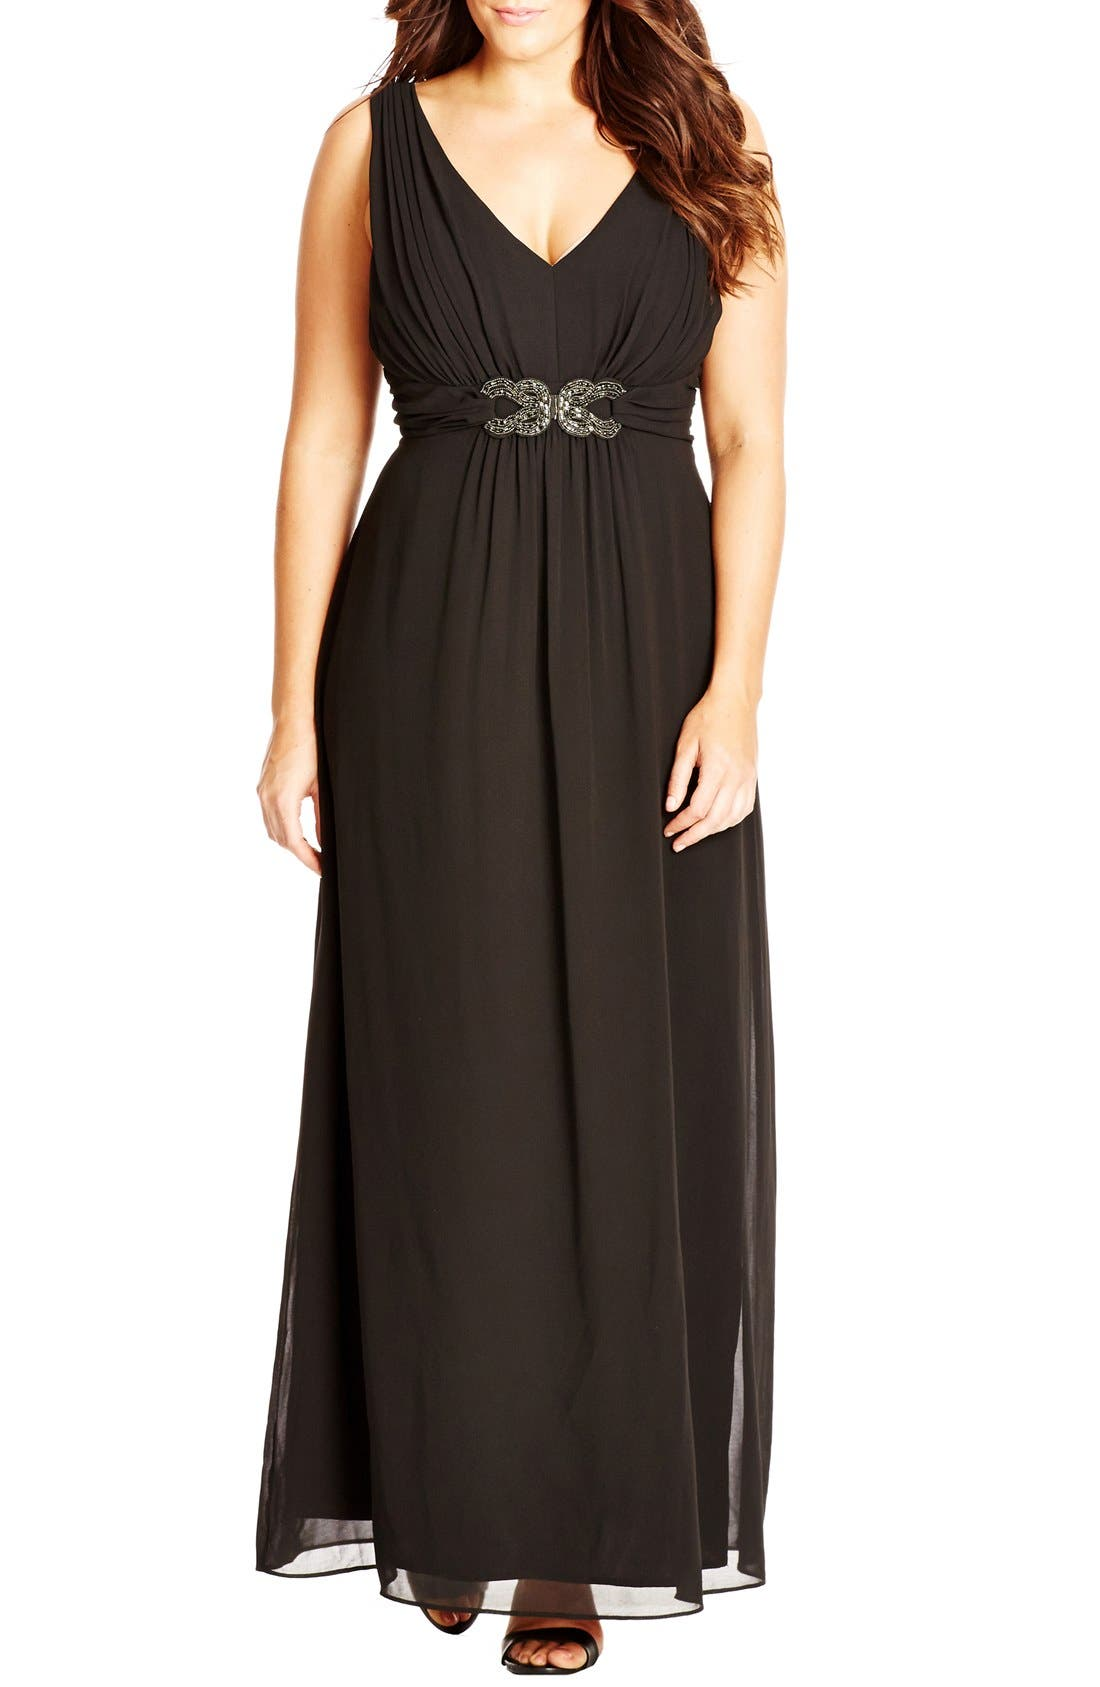 City Chic 'Elegant Sparkle' Embellished Maxi Dress (Plus Size)